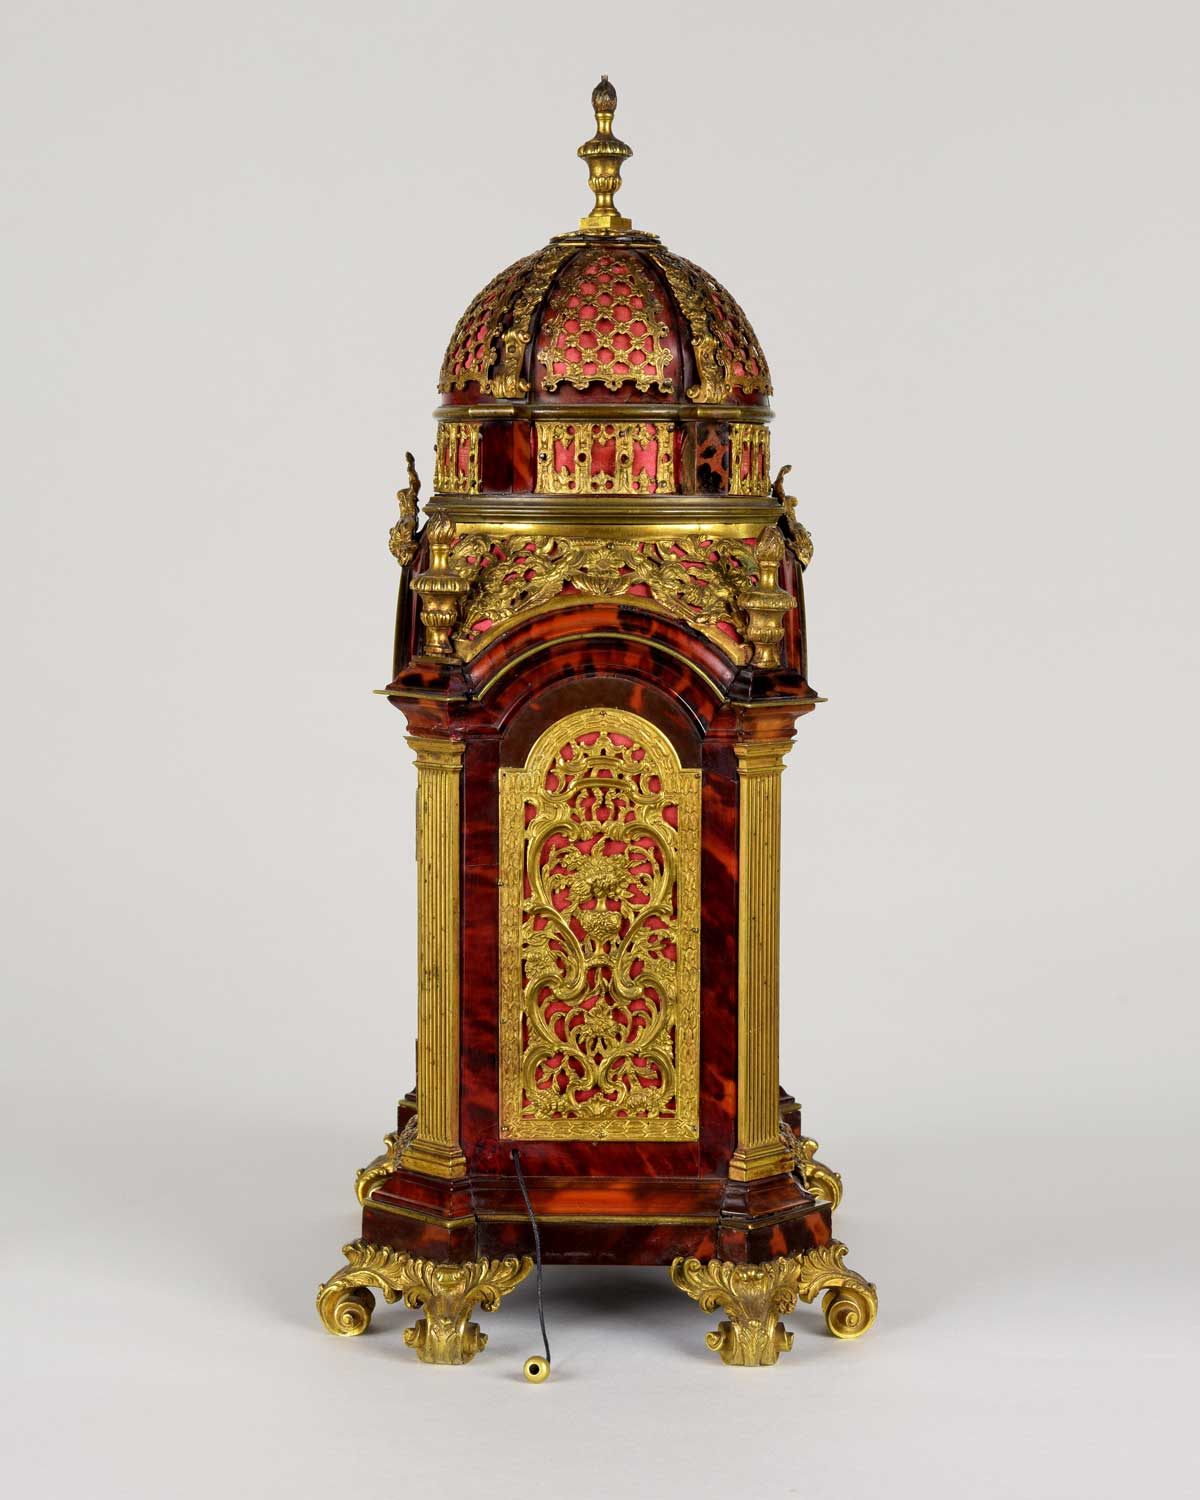 MARKWICK MARKHAM AND PERIGAL. A fine and rare 18th century ormolu mounted tortoiseshell musical table clock of small size made for the Ottoman Market.